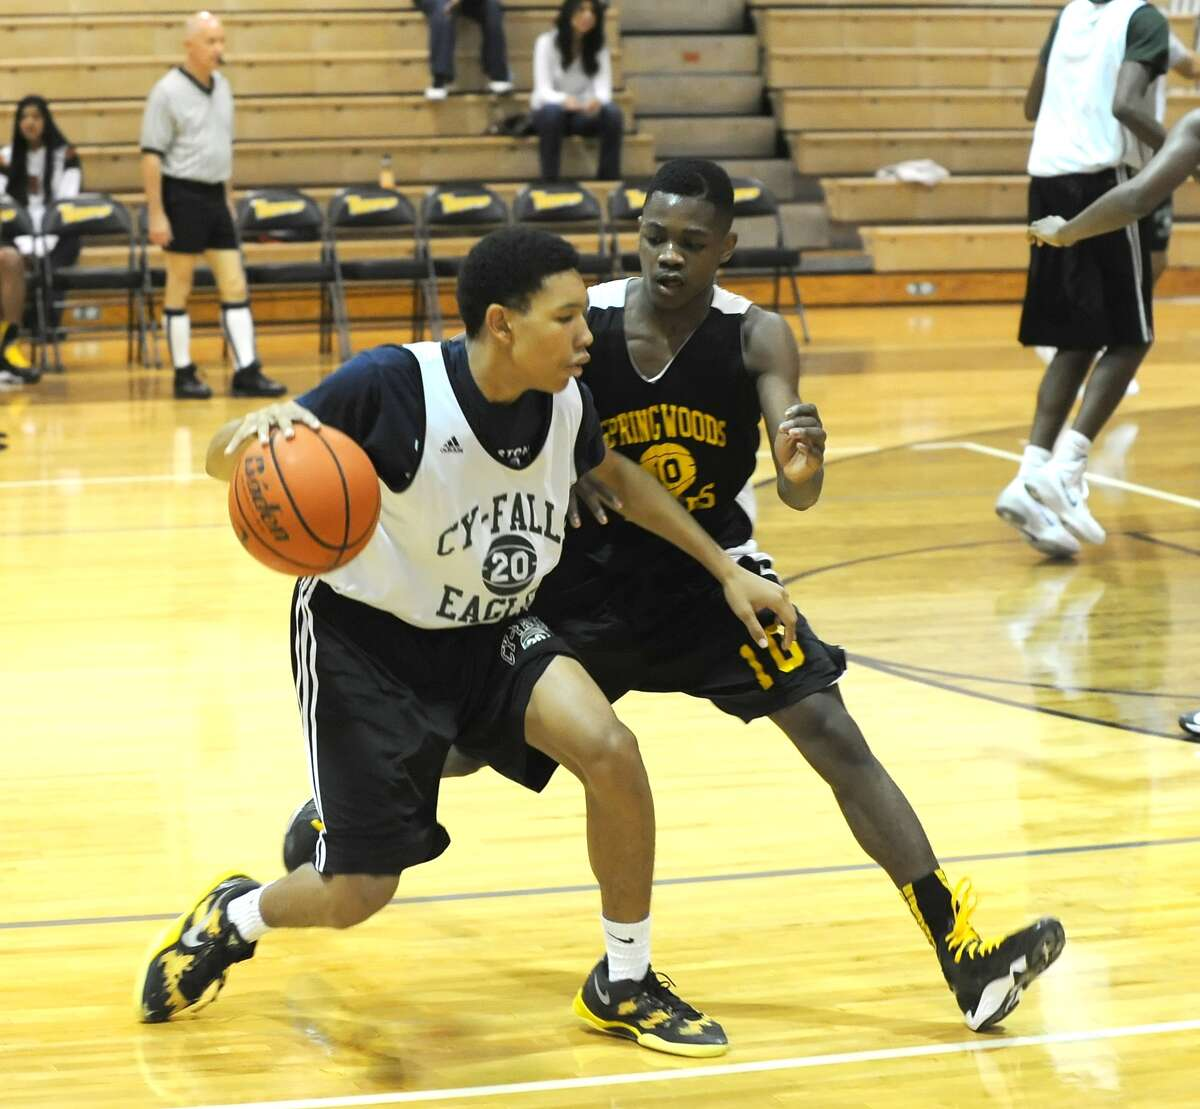 Cy Falls, Spring Woods and Summer Creek participated in a three team scrimmage at Spring Woods High School, 11-9-13. Left, Cy Falls guard Desaun Green (20) can't get around the defense of Spring Woods Jamond Burleson (10).